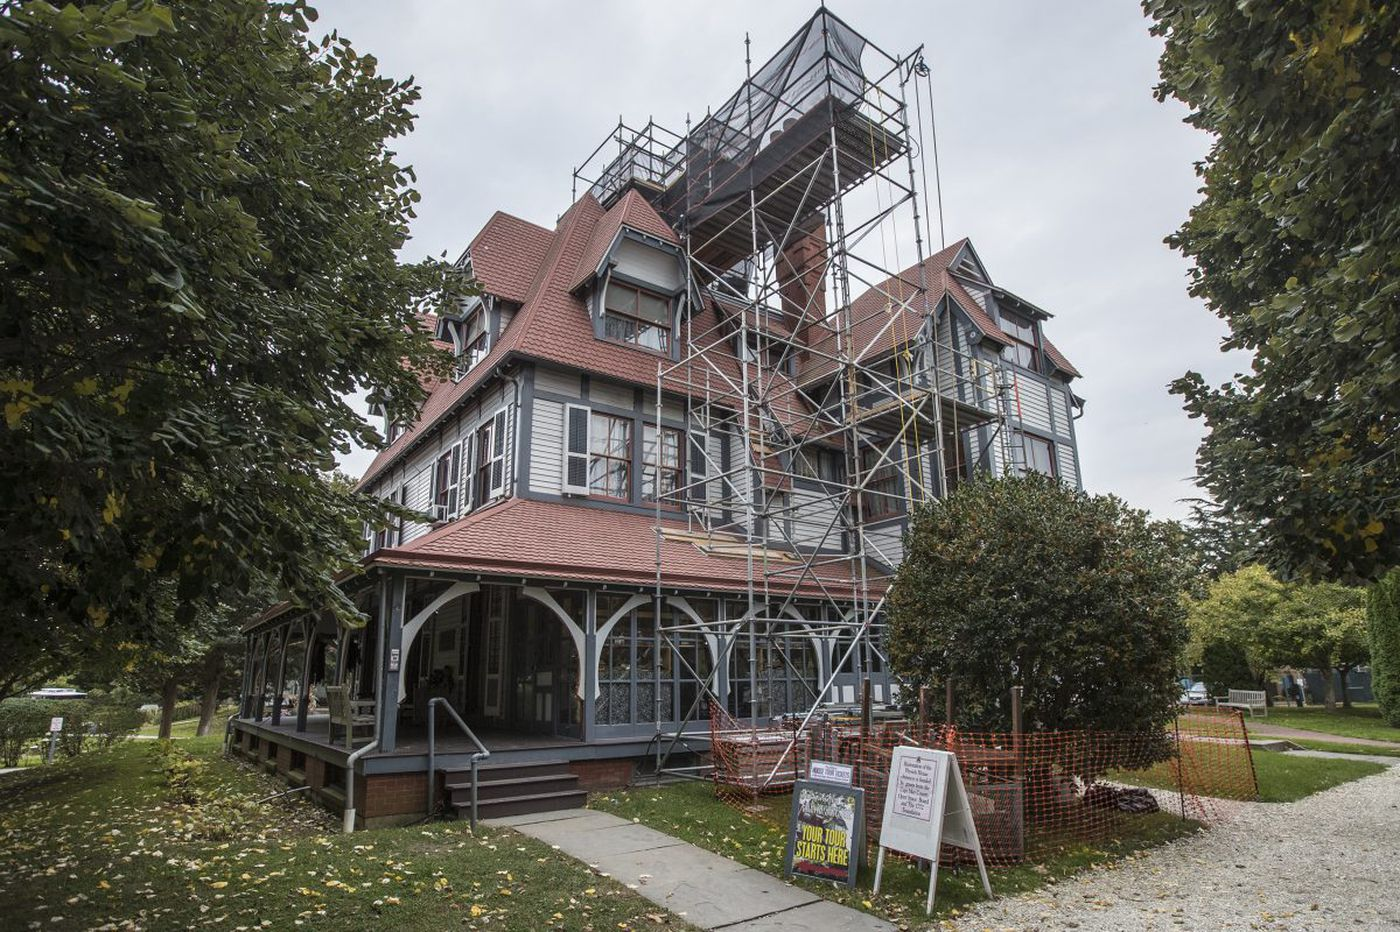 Cape May ghost tours offer visitors a supernatural Halloween